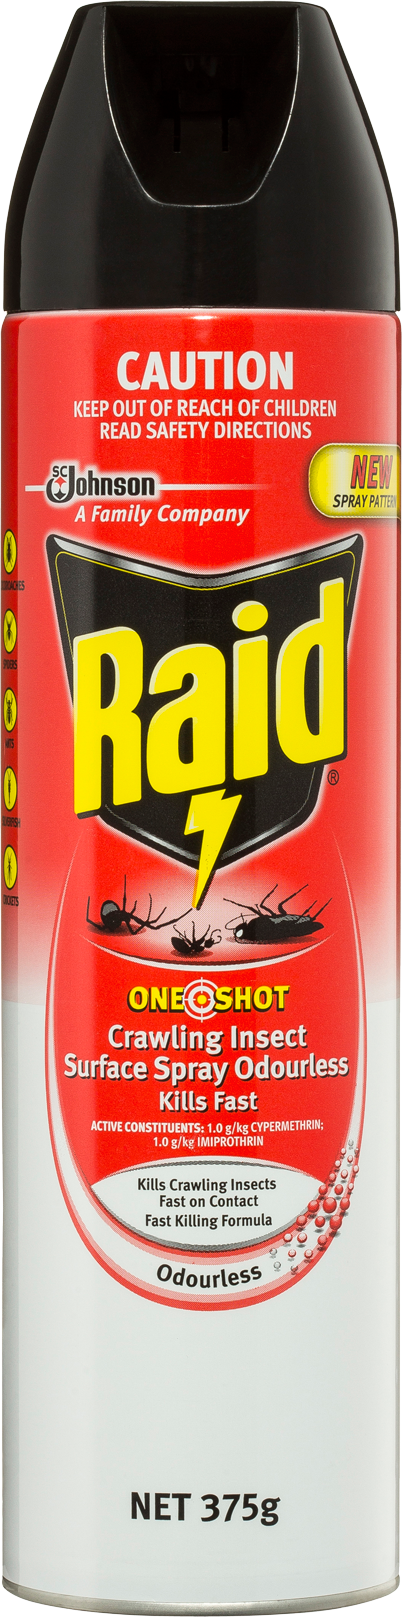 RAID ONE SHOT CRAWLING INSECT SURFACE SPRAY ODOURLESS KILLS FAST